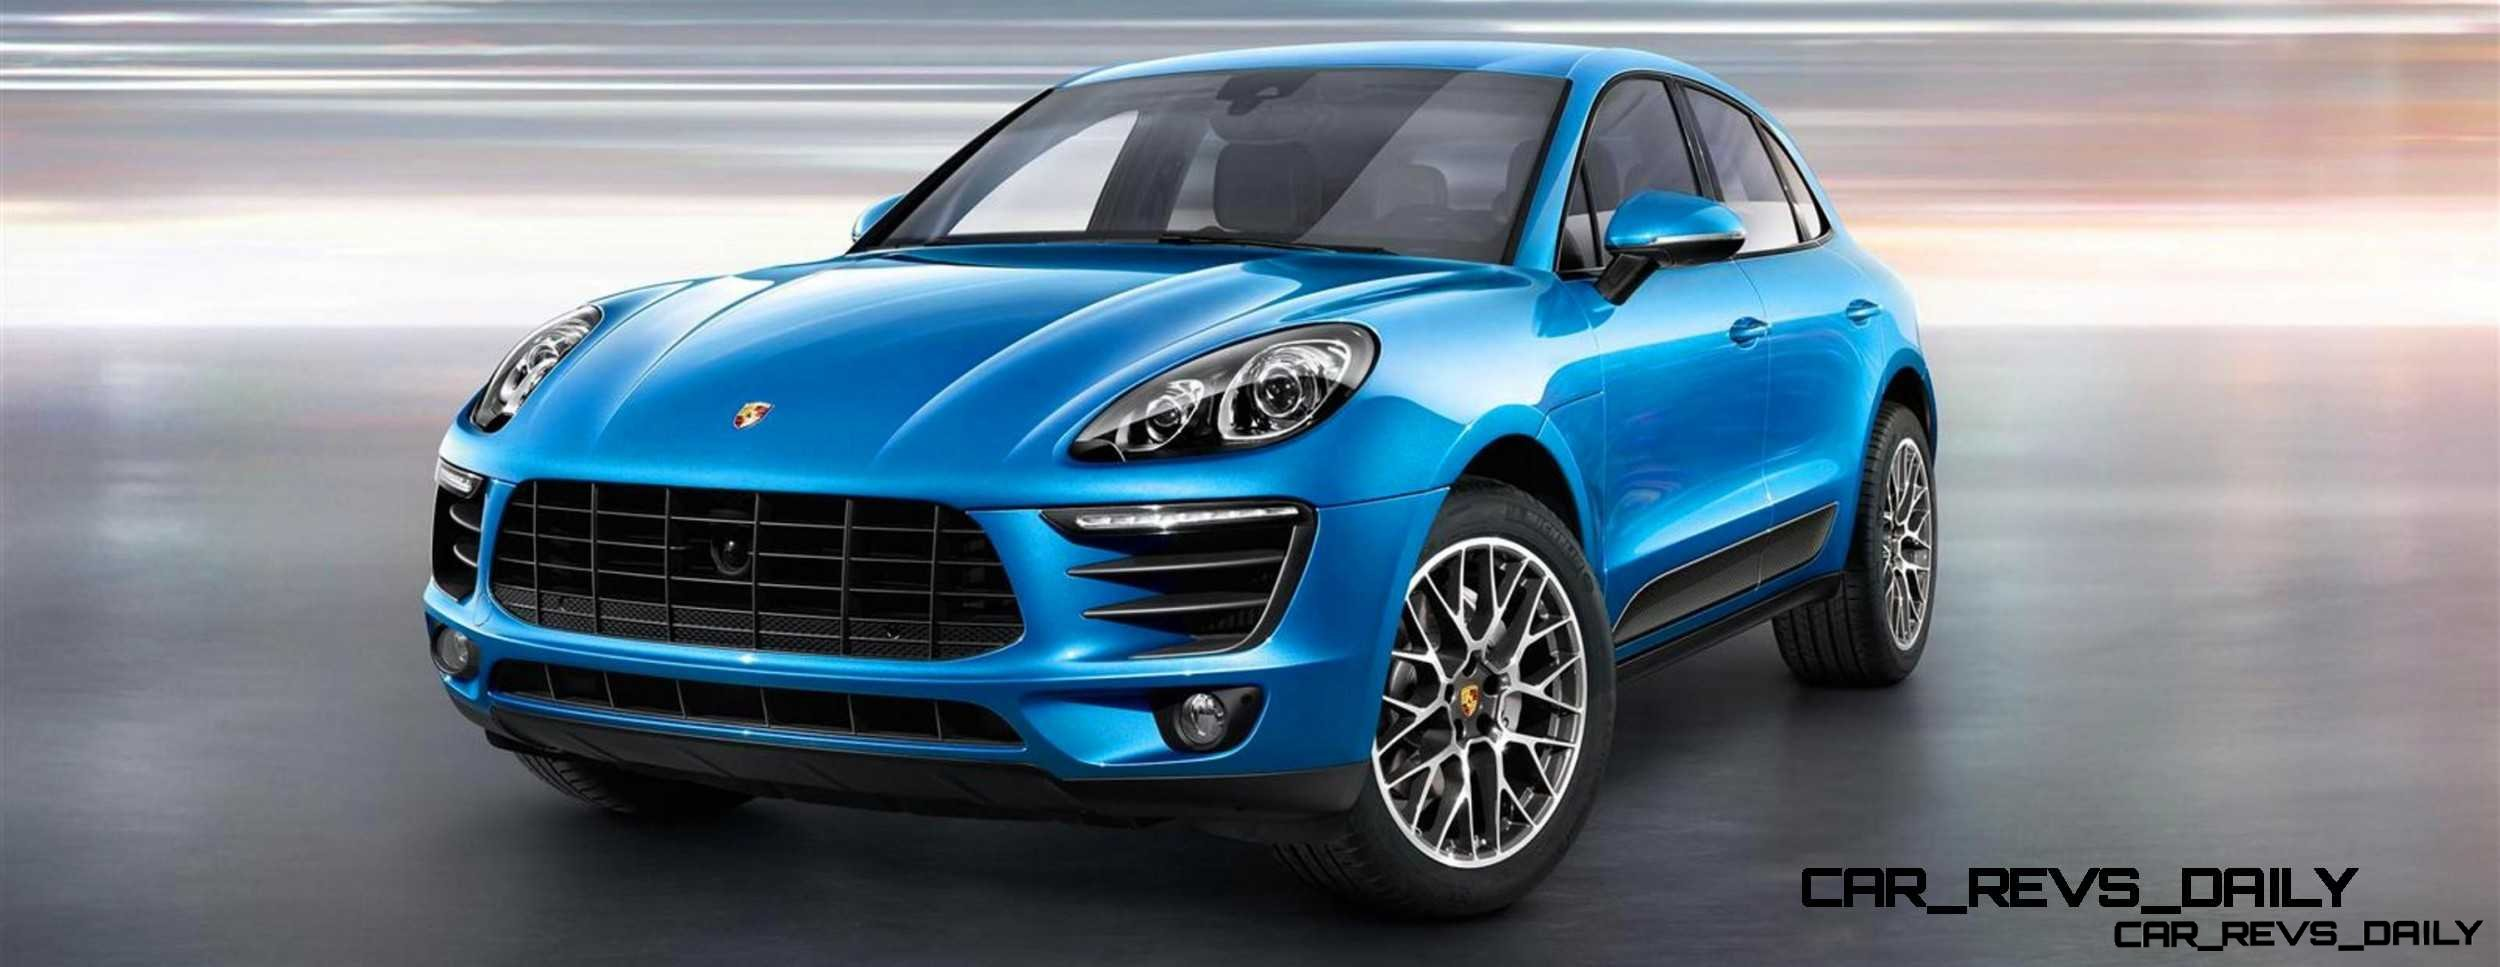 2015 Porsche Macan - Latest Images - CarRevsDaily.com 94